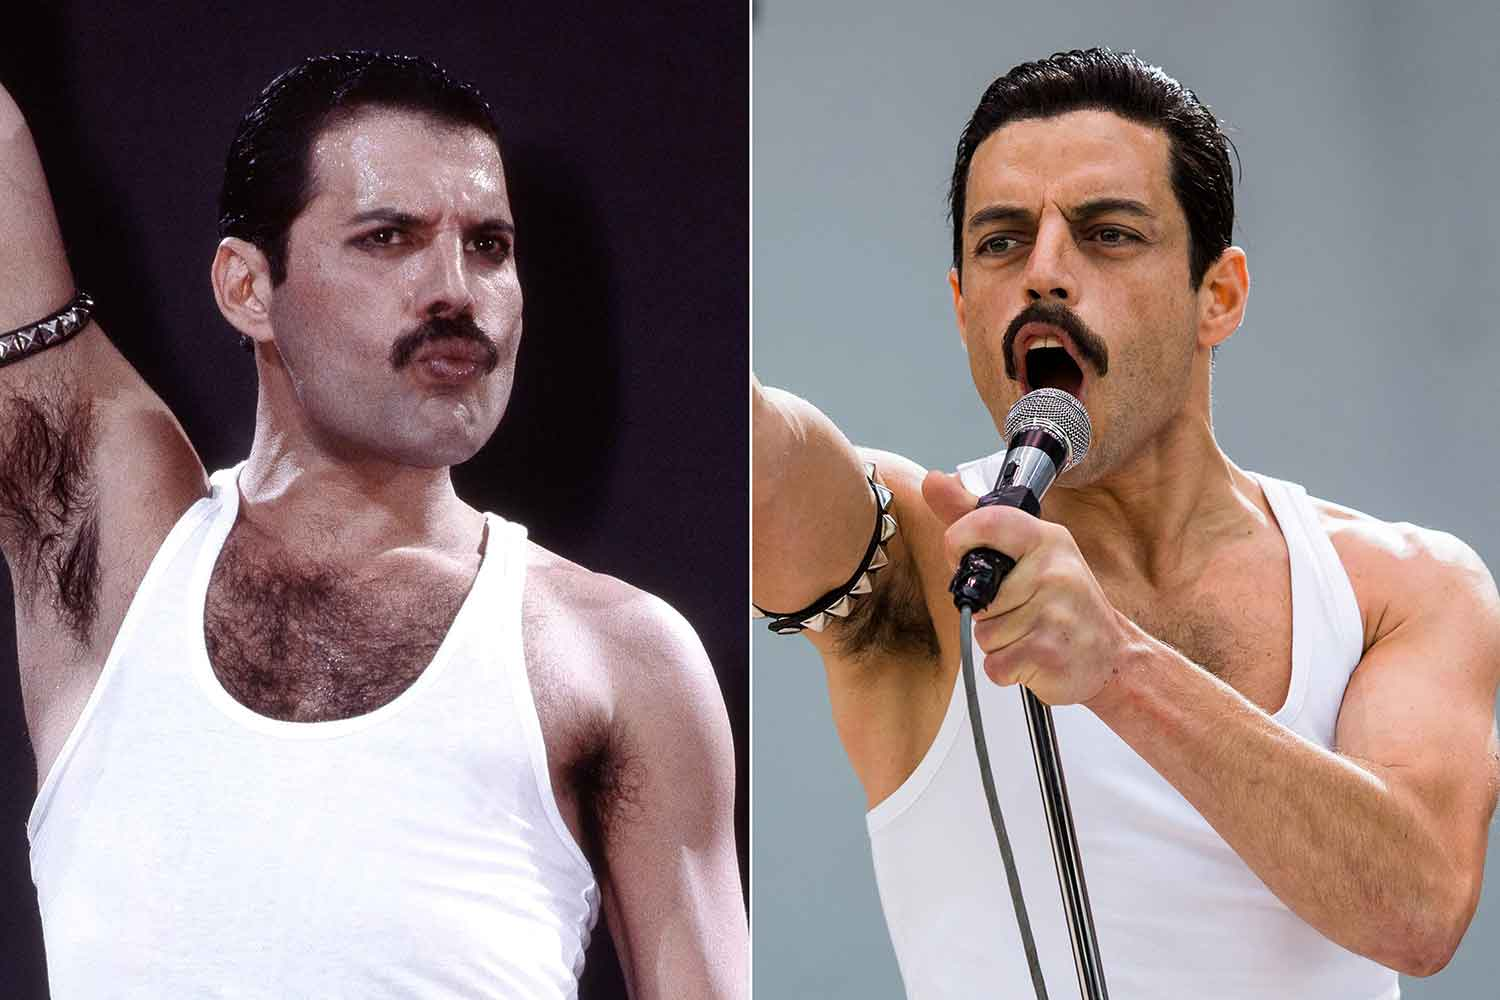 Why did Farrokh Bulsara choose the name Freddie Mercury?